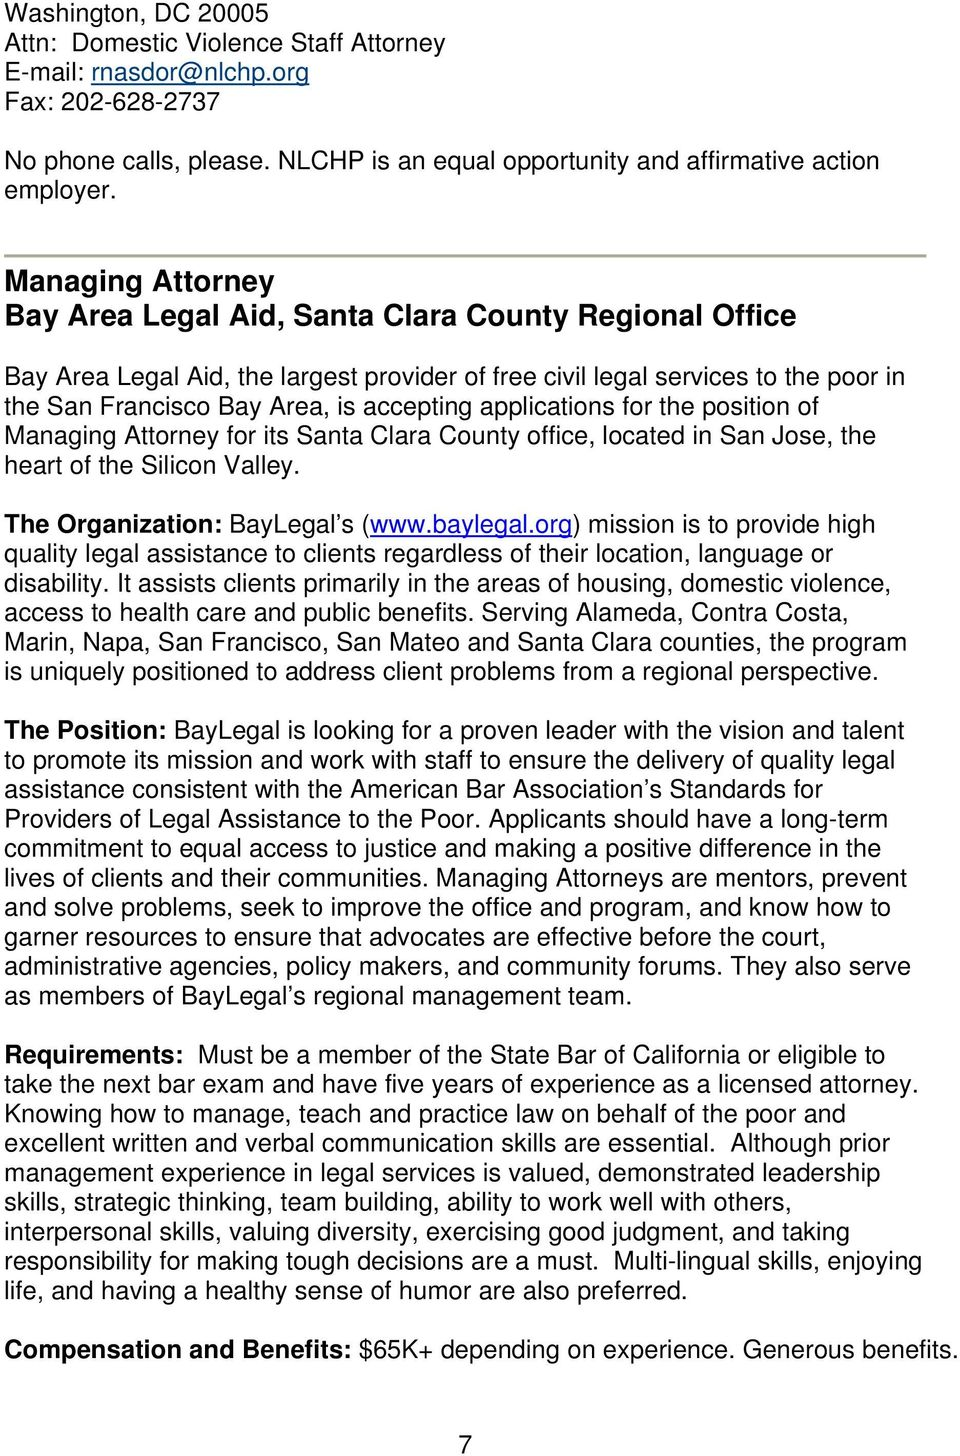 applications for the position of Managing Attorney for its Santa Clara County office, located in San Jose, the heart of the Silicon Valley. The Organization: BayLegal s (www.baylegal.